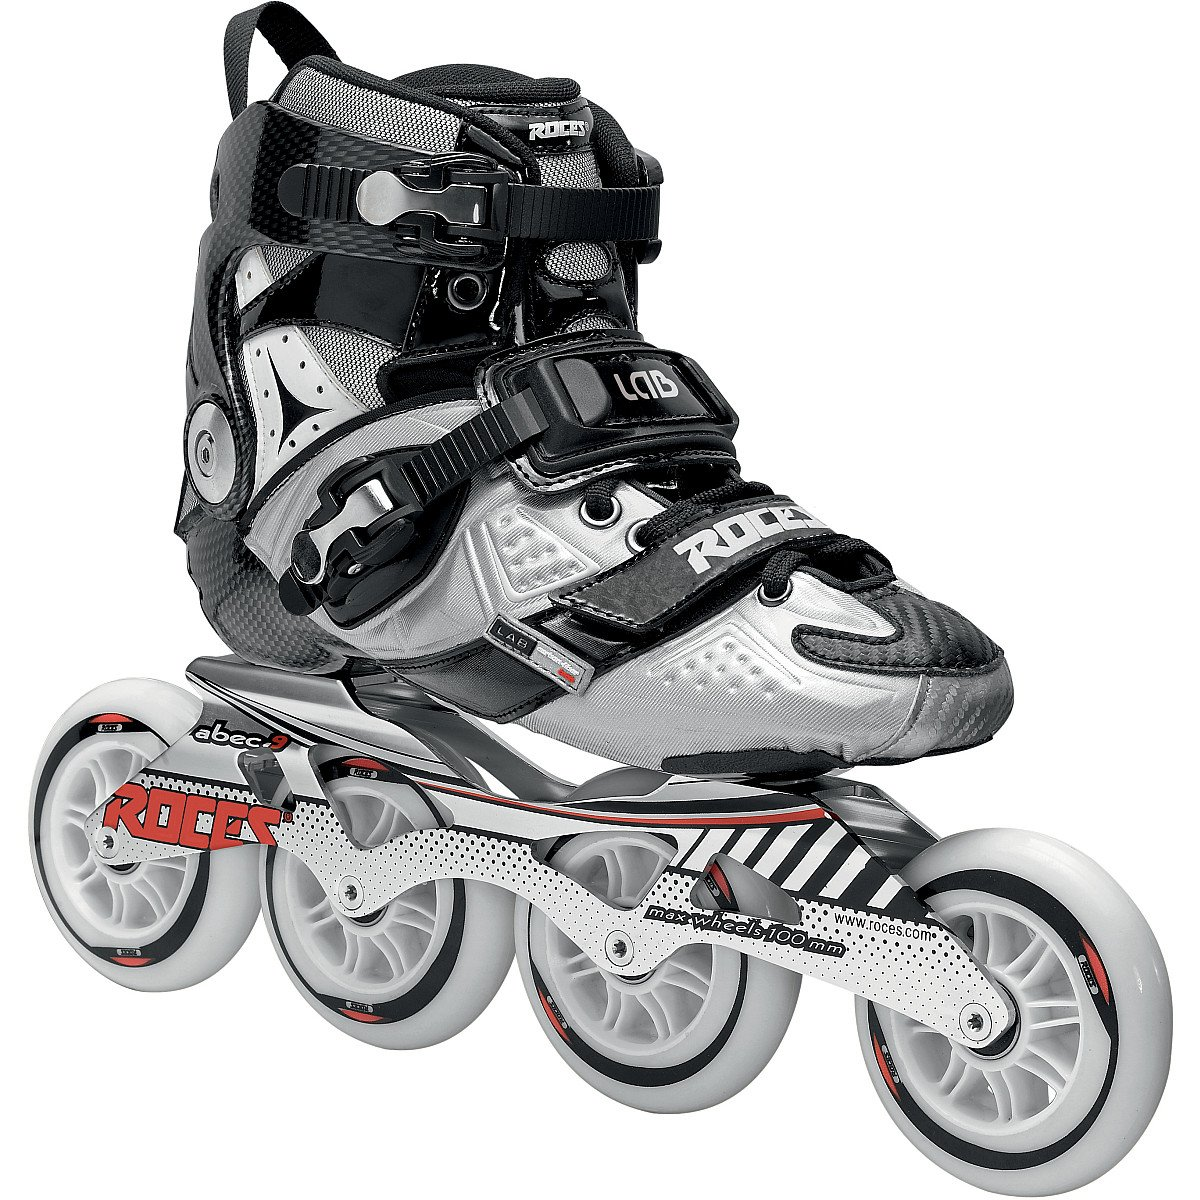 Roces 400721 Men's Model Lab Fitness Inline Skate, US 7, Black/Silver by Roces